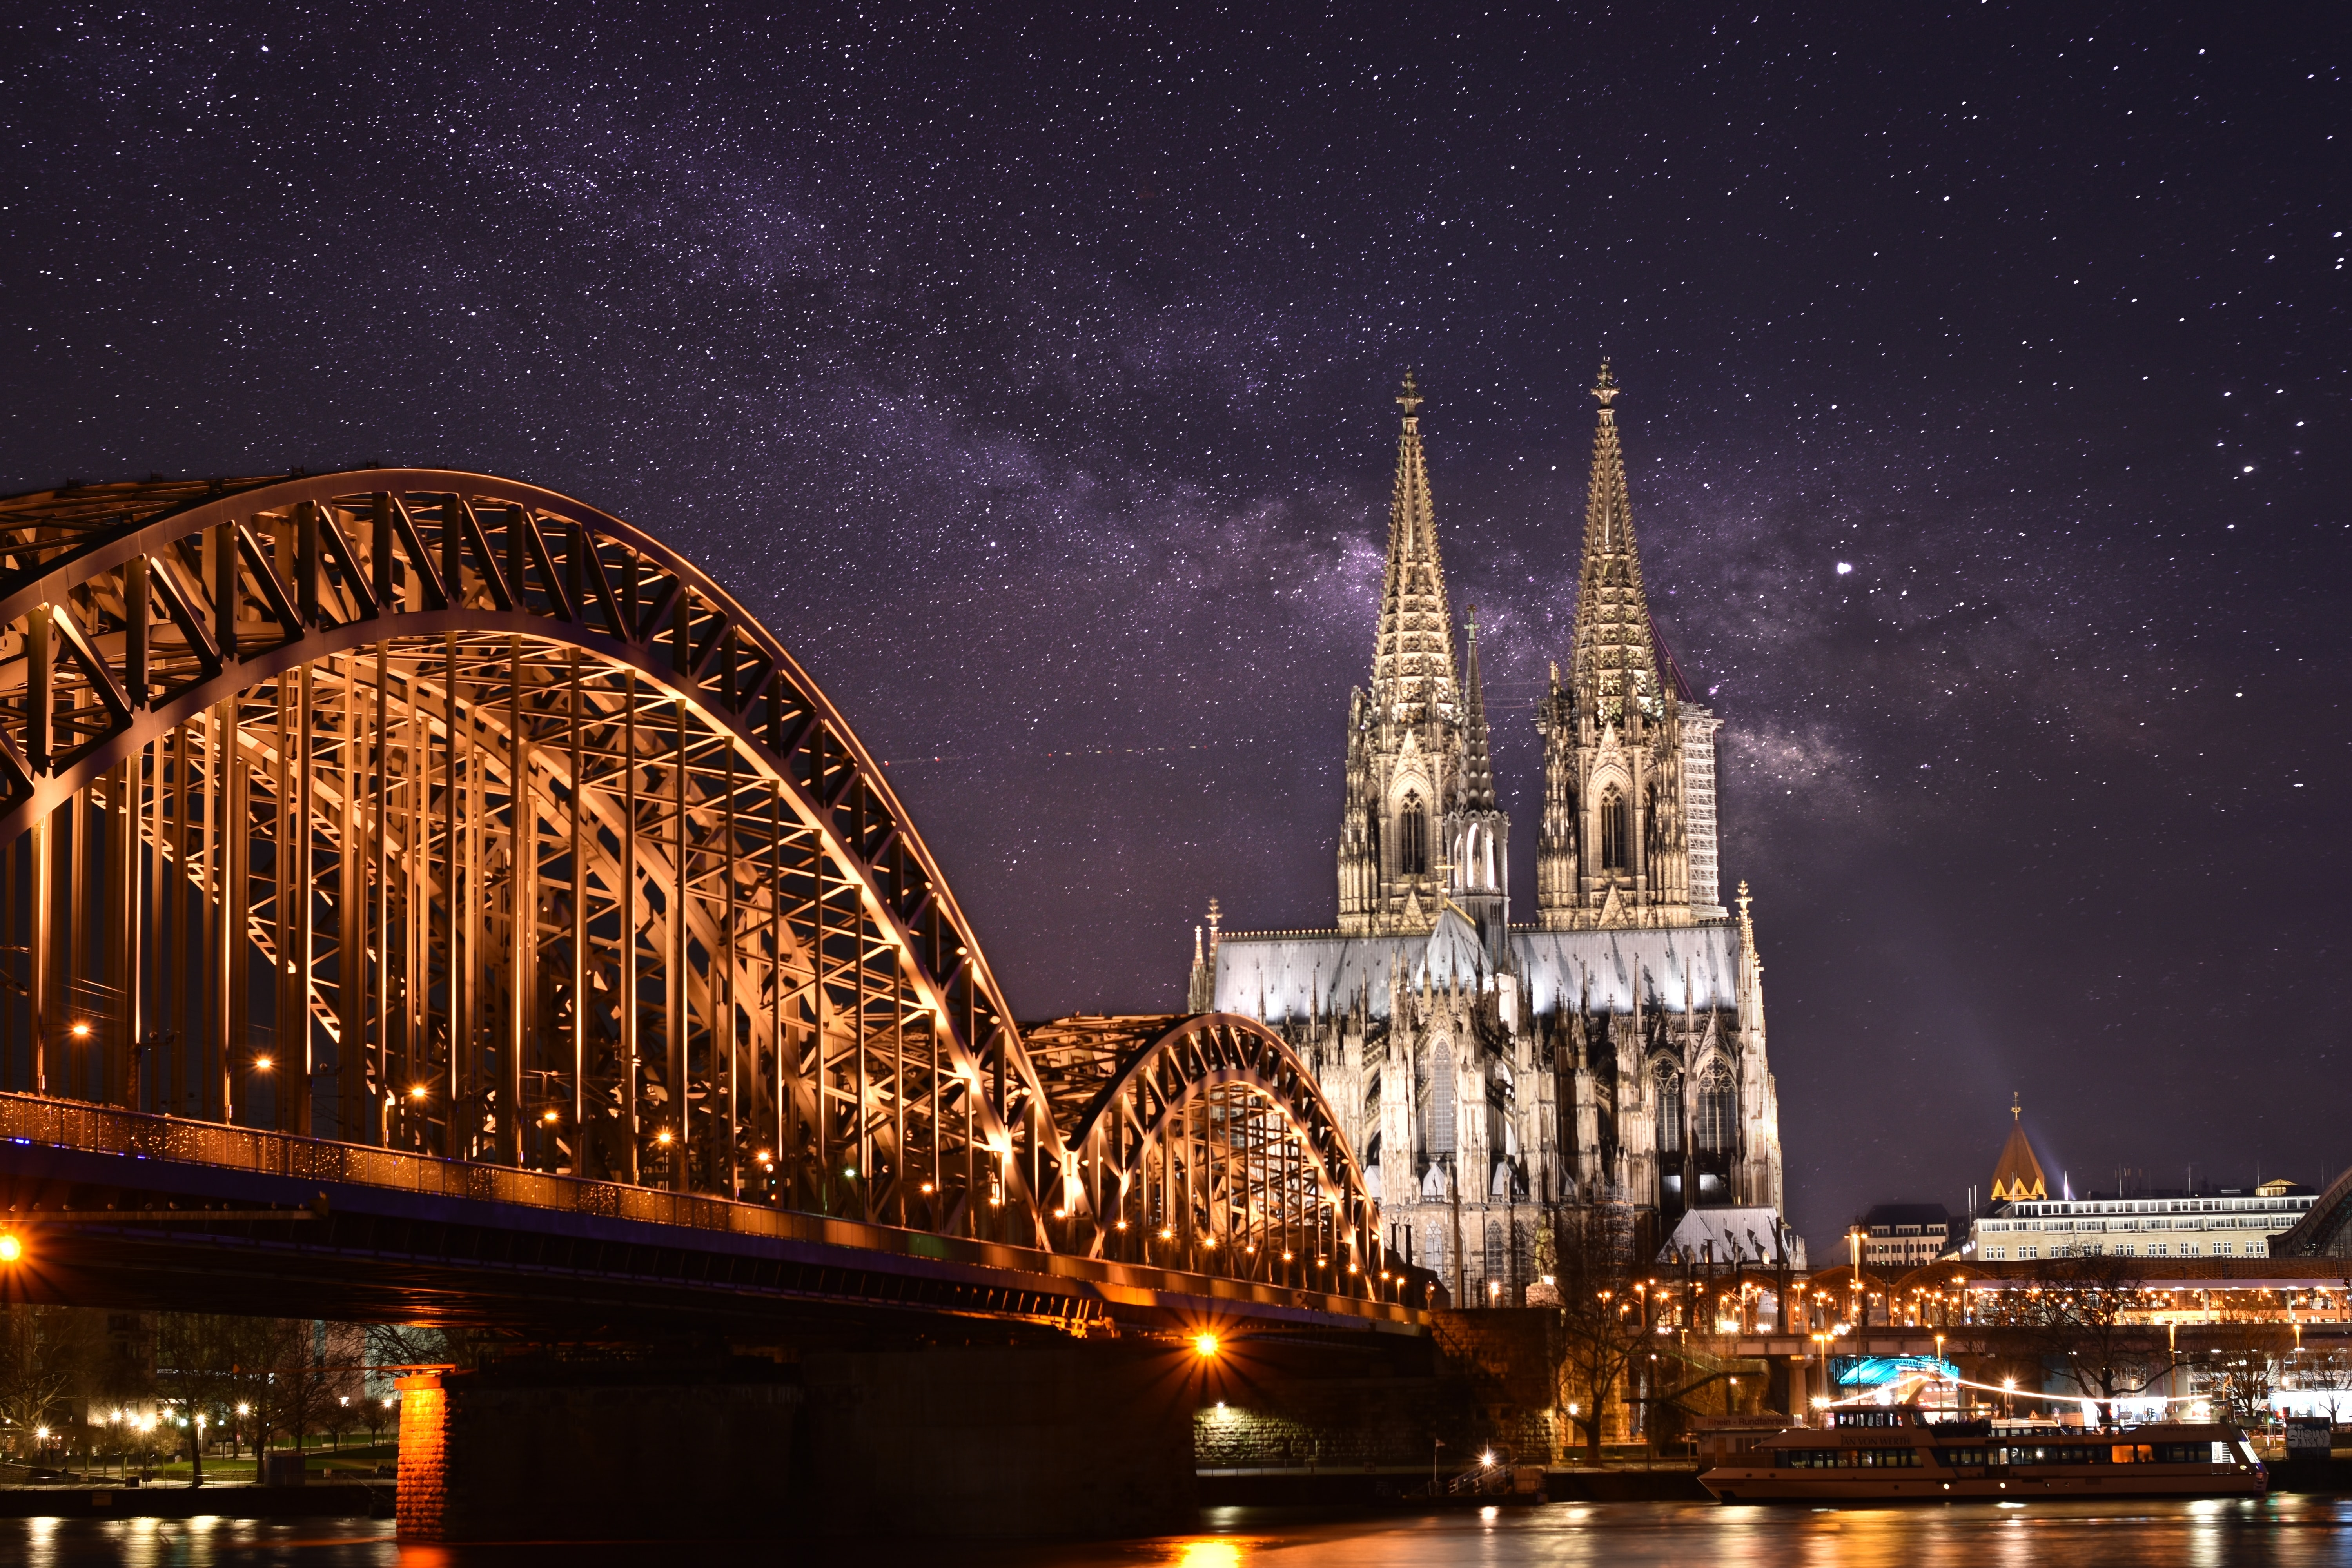 Cologne and Hamburg are officially joining the SCALE Network!